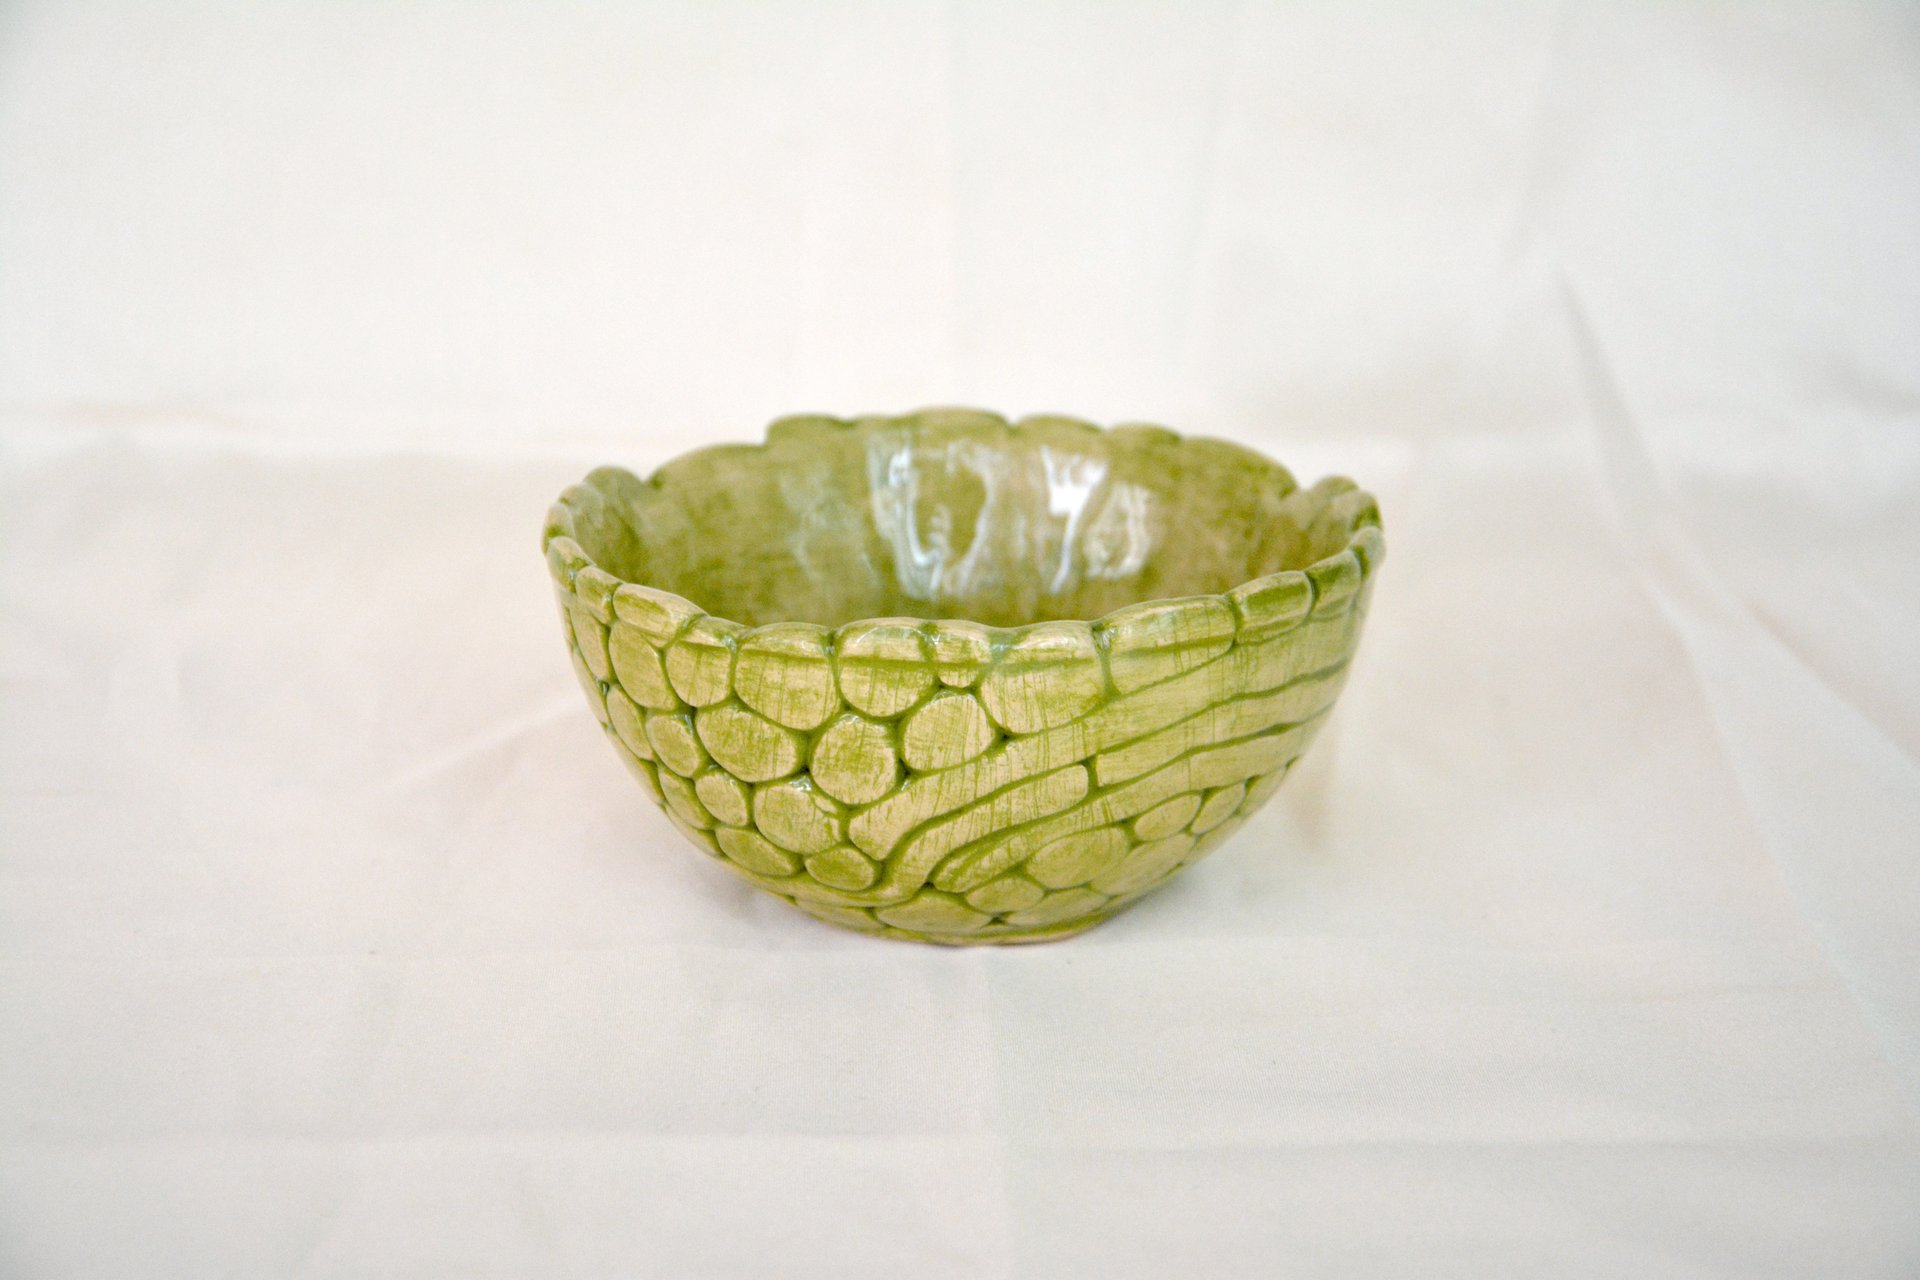 Light Green patina - Pialy and sauceboats, height - 6 cm, diameter - 11.5 cm, photo 4 of 4.